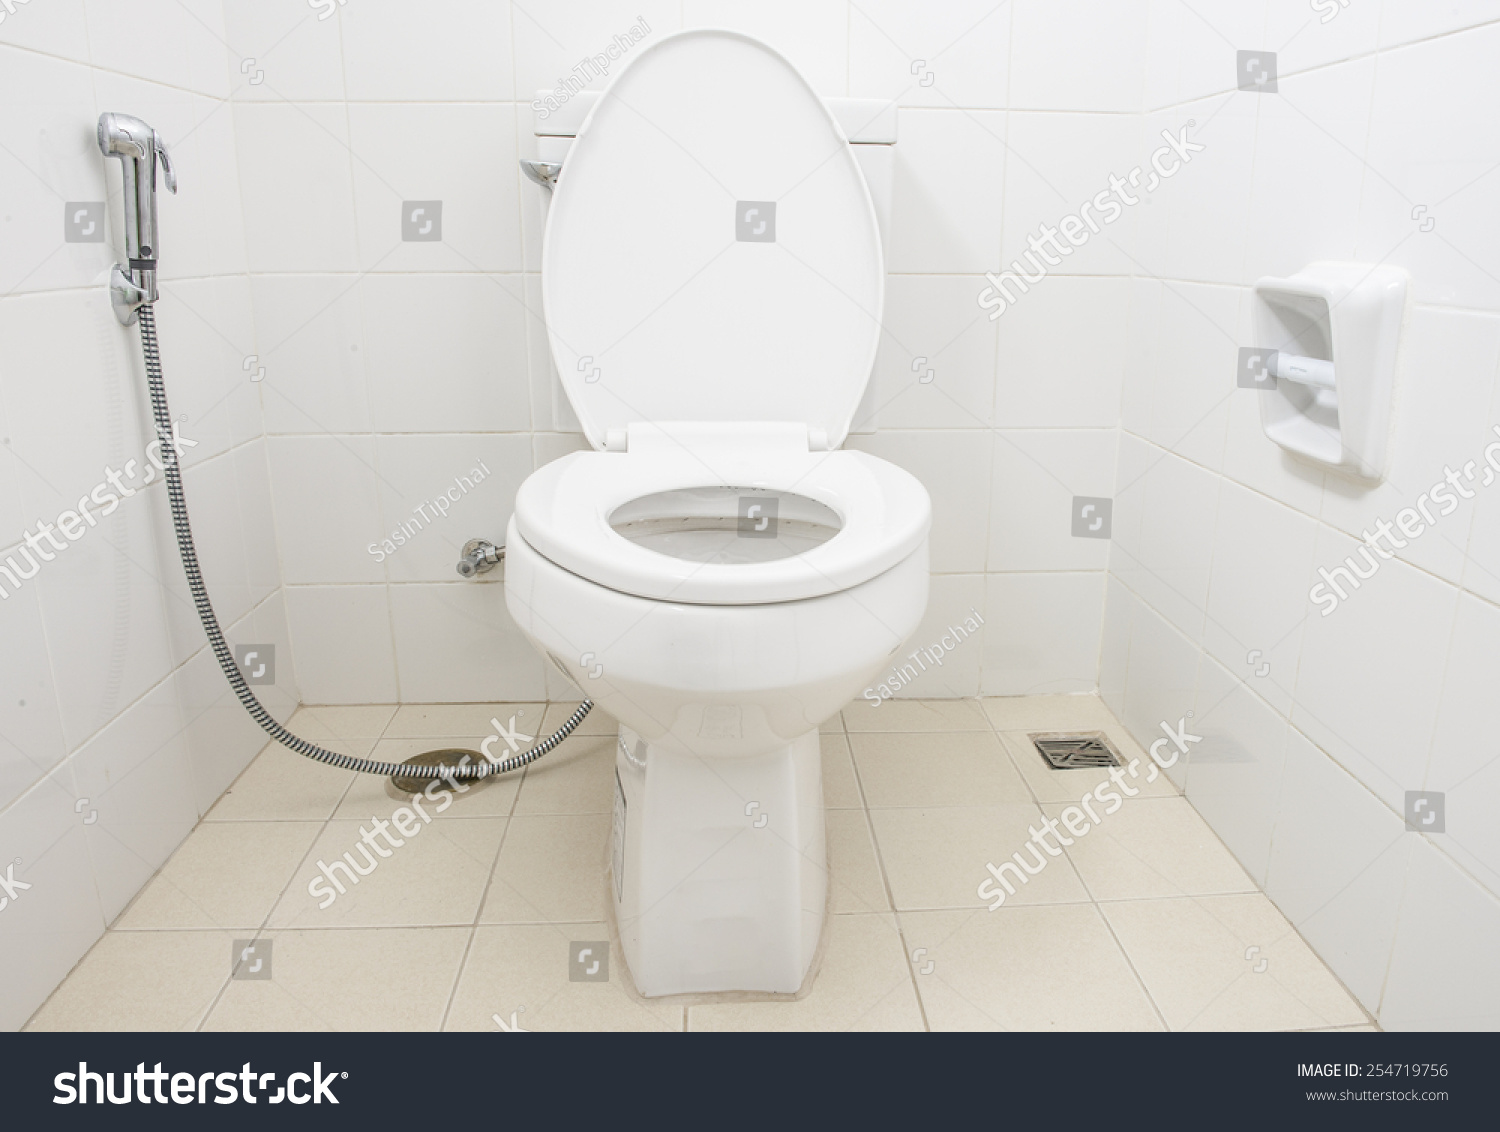 Bathroom Toilet Bowl - Toilet bowl in a modern bathroom